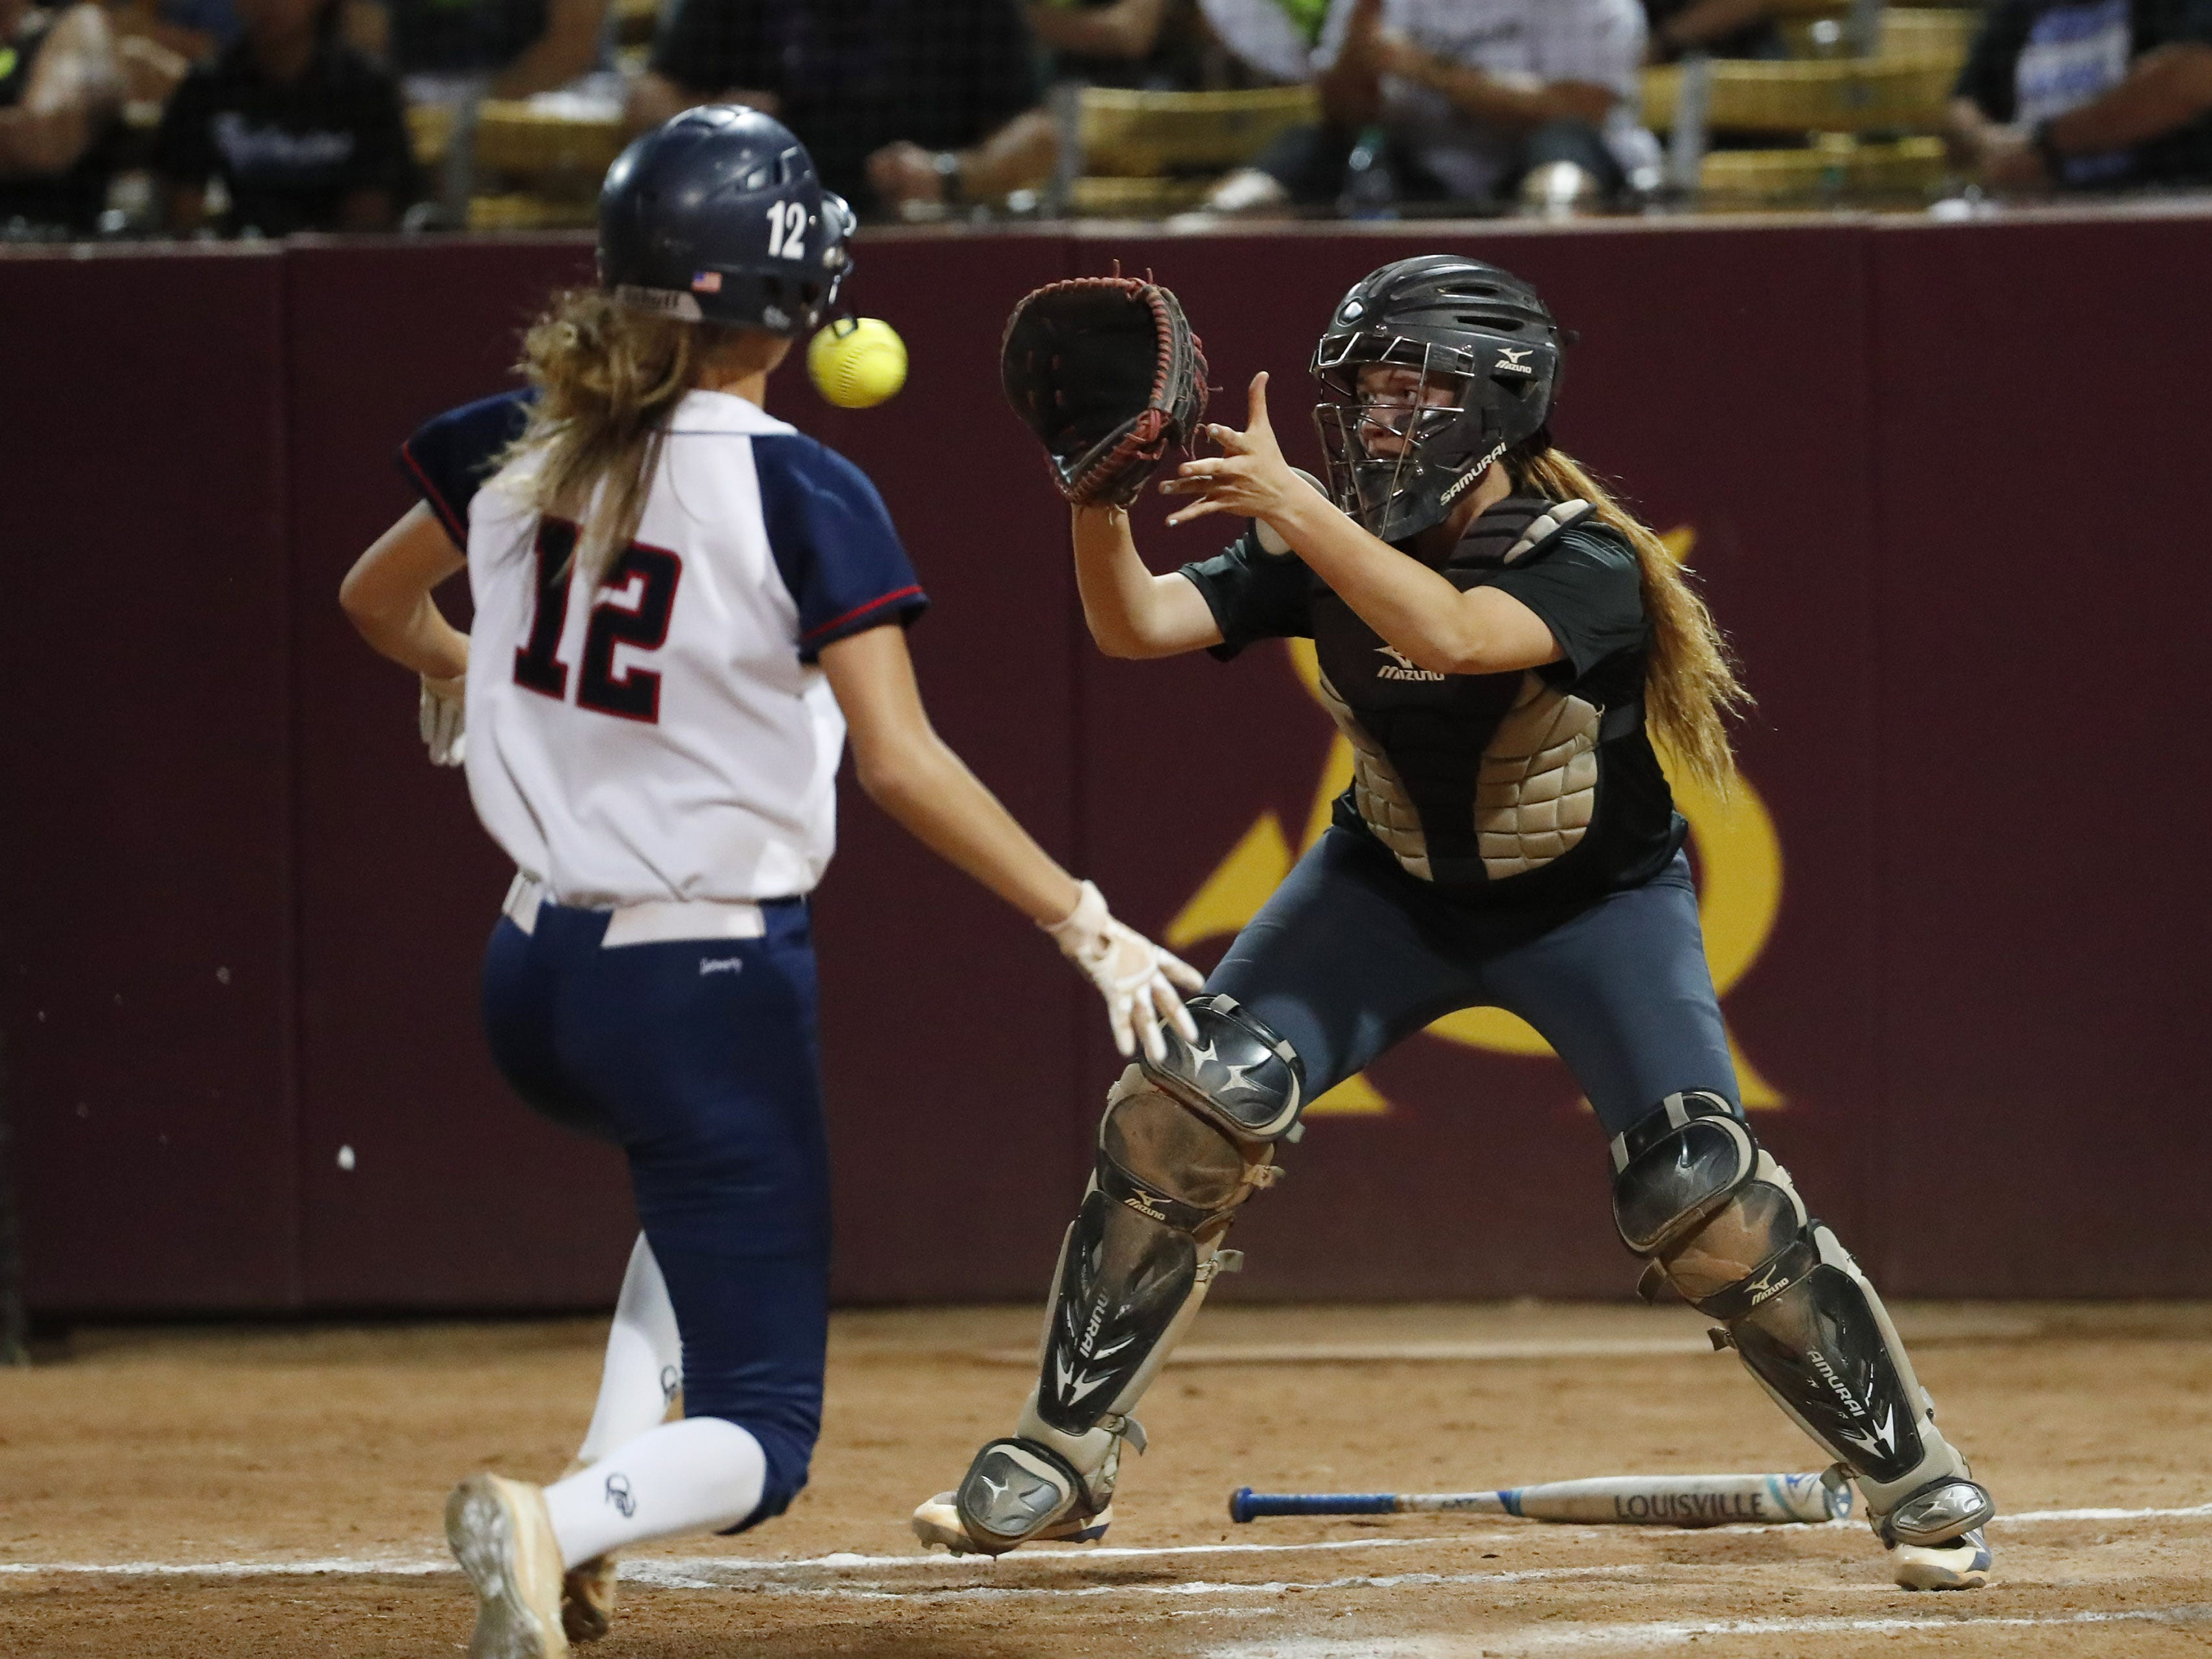 Pinnacle's Emma Bullard (12) is forced out at home by Sandra Day O'Connor catcher Jocelyn Erickson (8) during the 6A State Softball Championship in Tempe, Ariz. May 13, 2019.